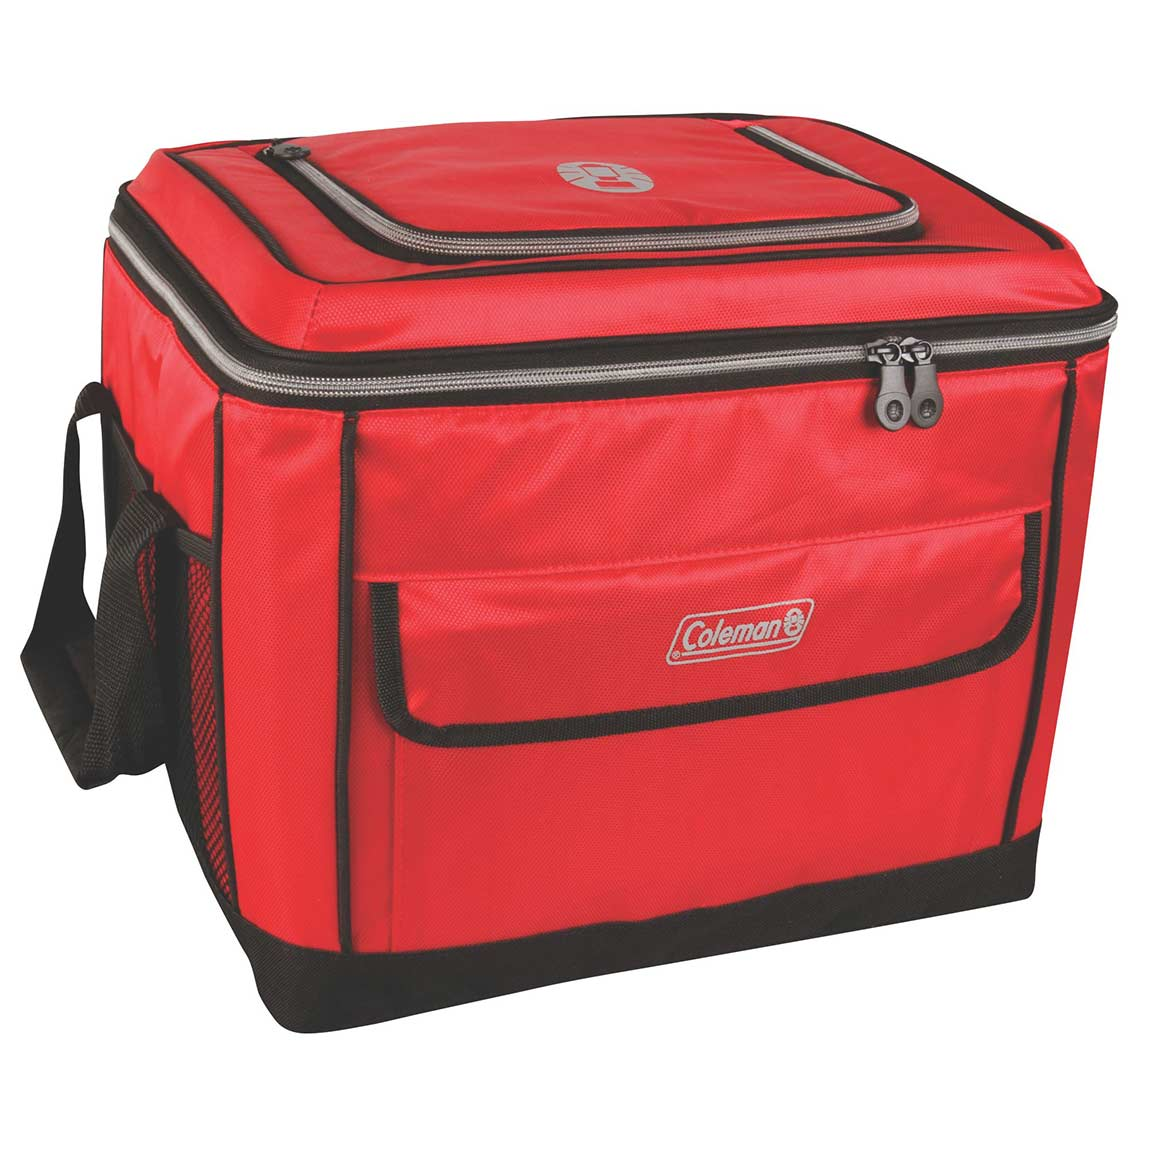 Coleman 40 Can Collapsible Cooler, Red_1.jpg